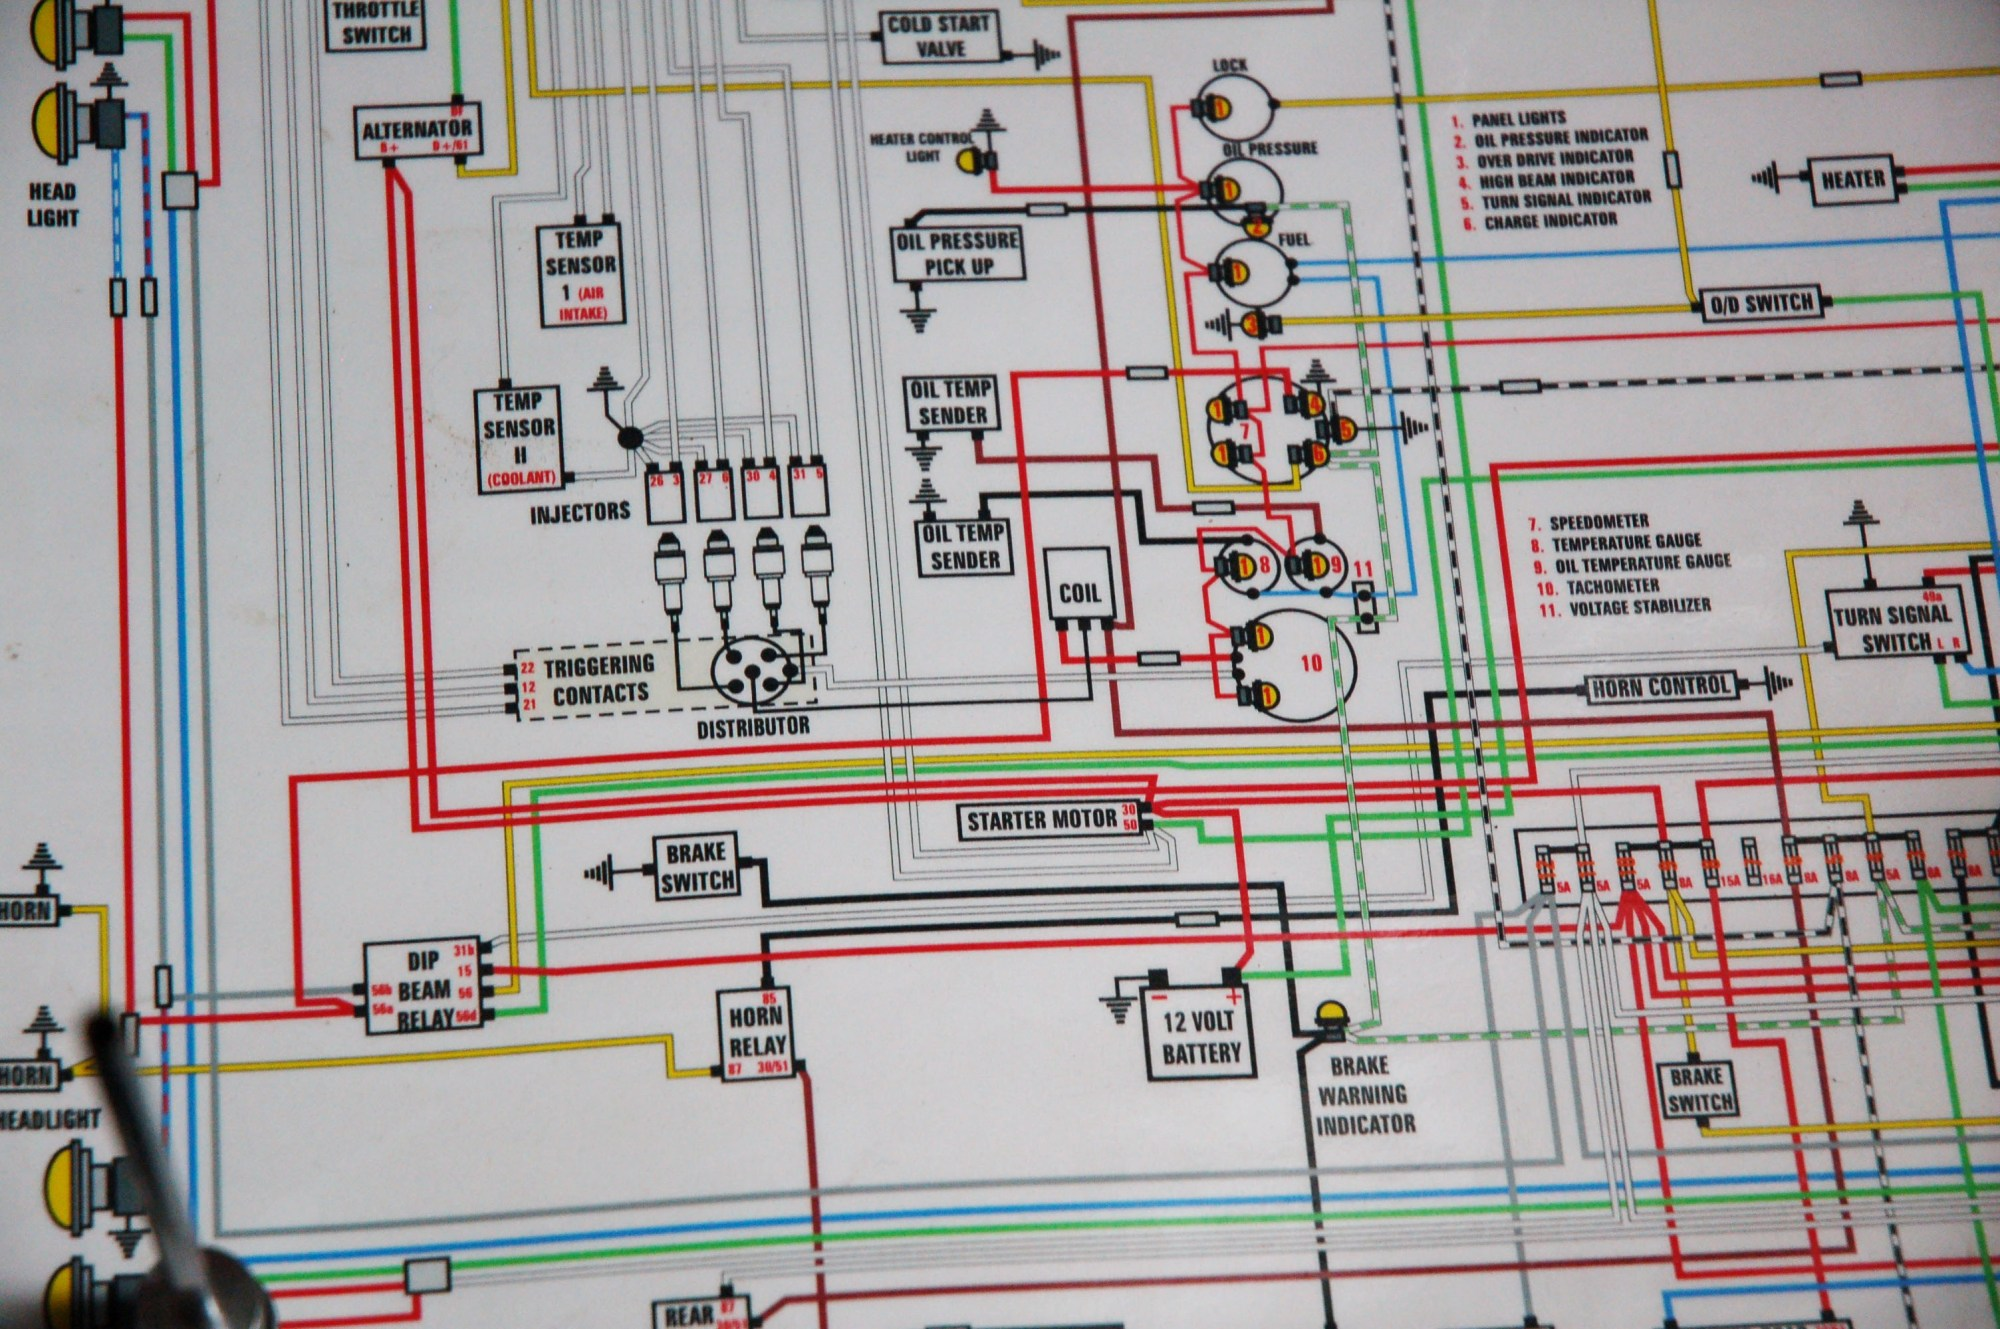 hight resolution of color wiring diagram from colorwiringdiagrams com